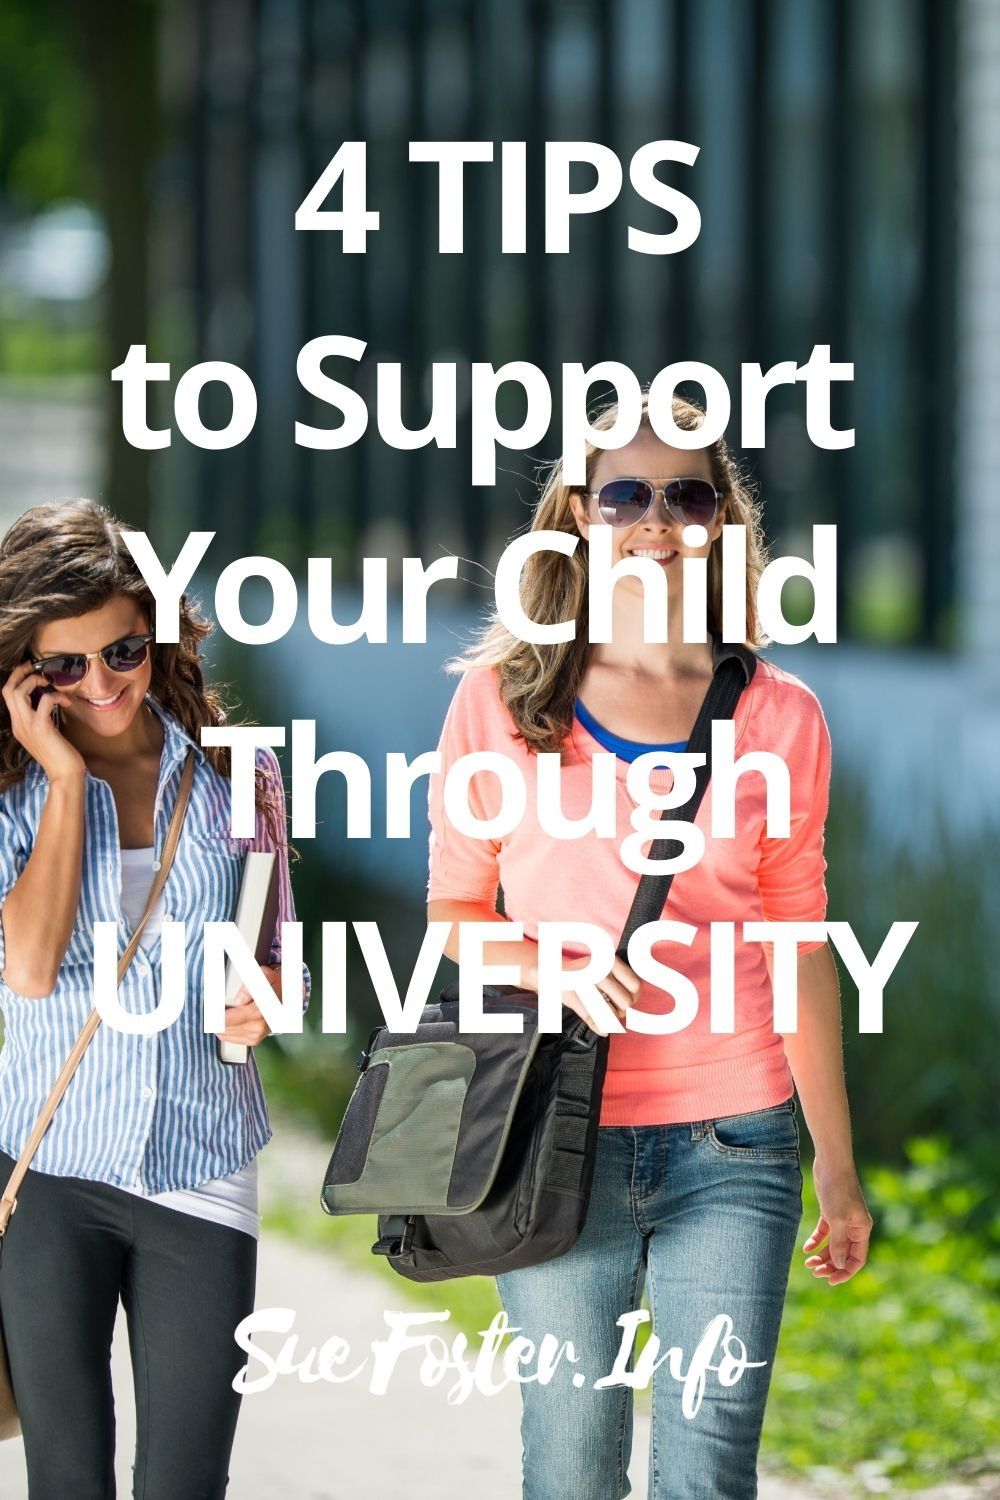 Here are some good ways you can help to support your child through university.